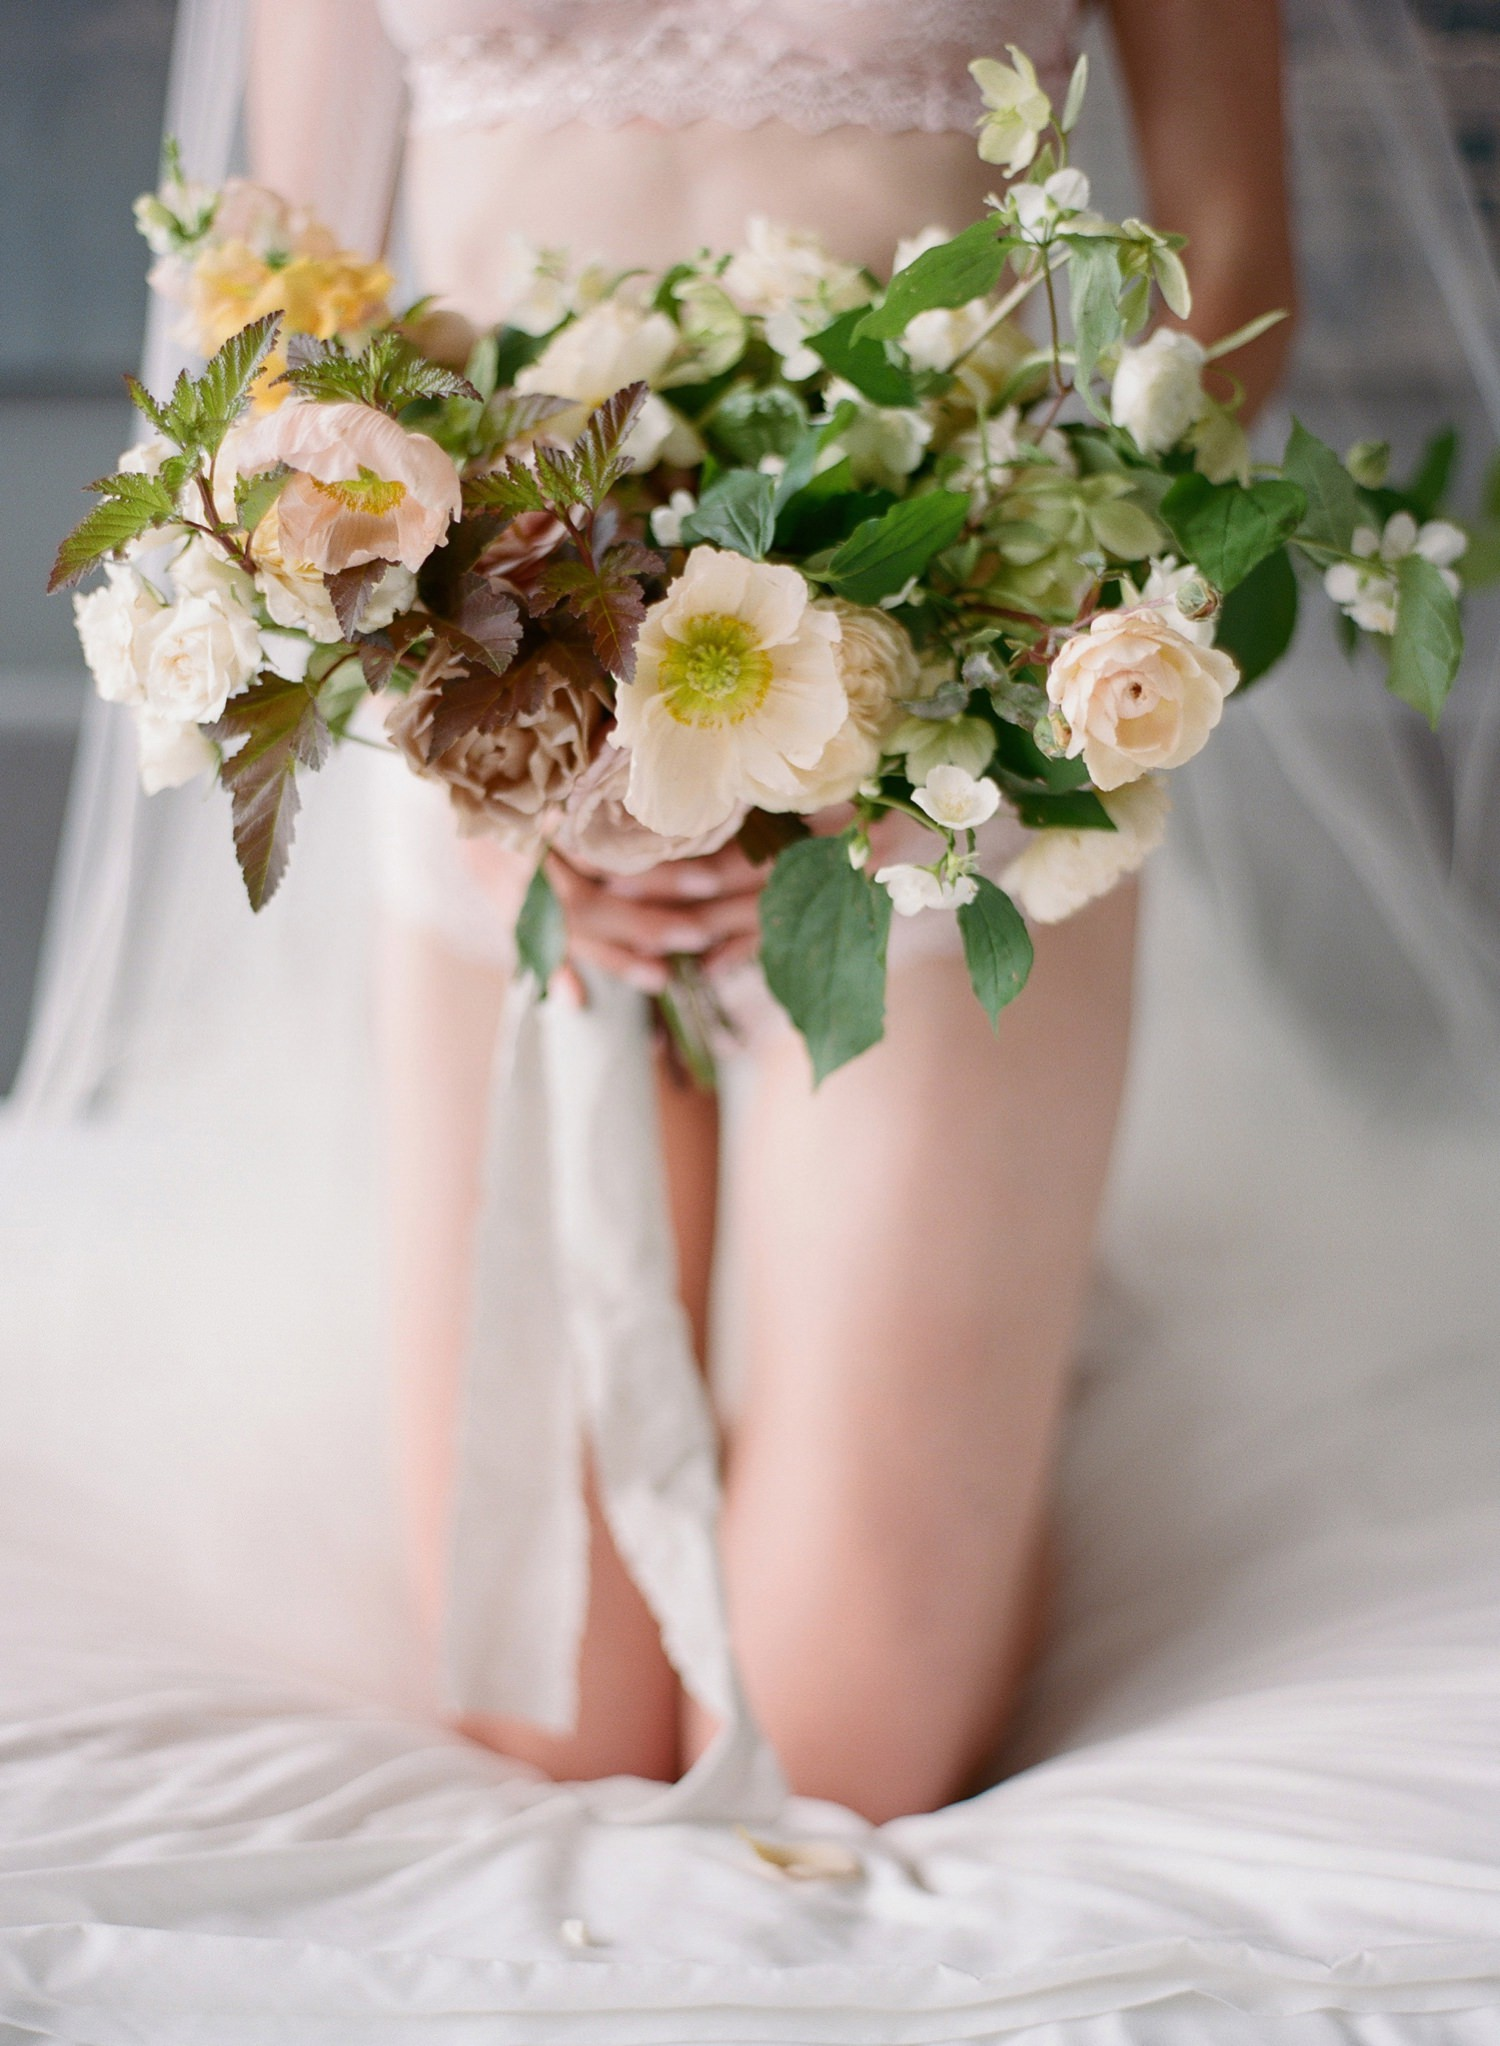 organic bridal boudoir session